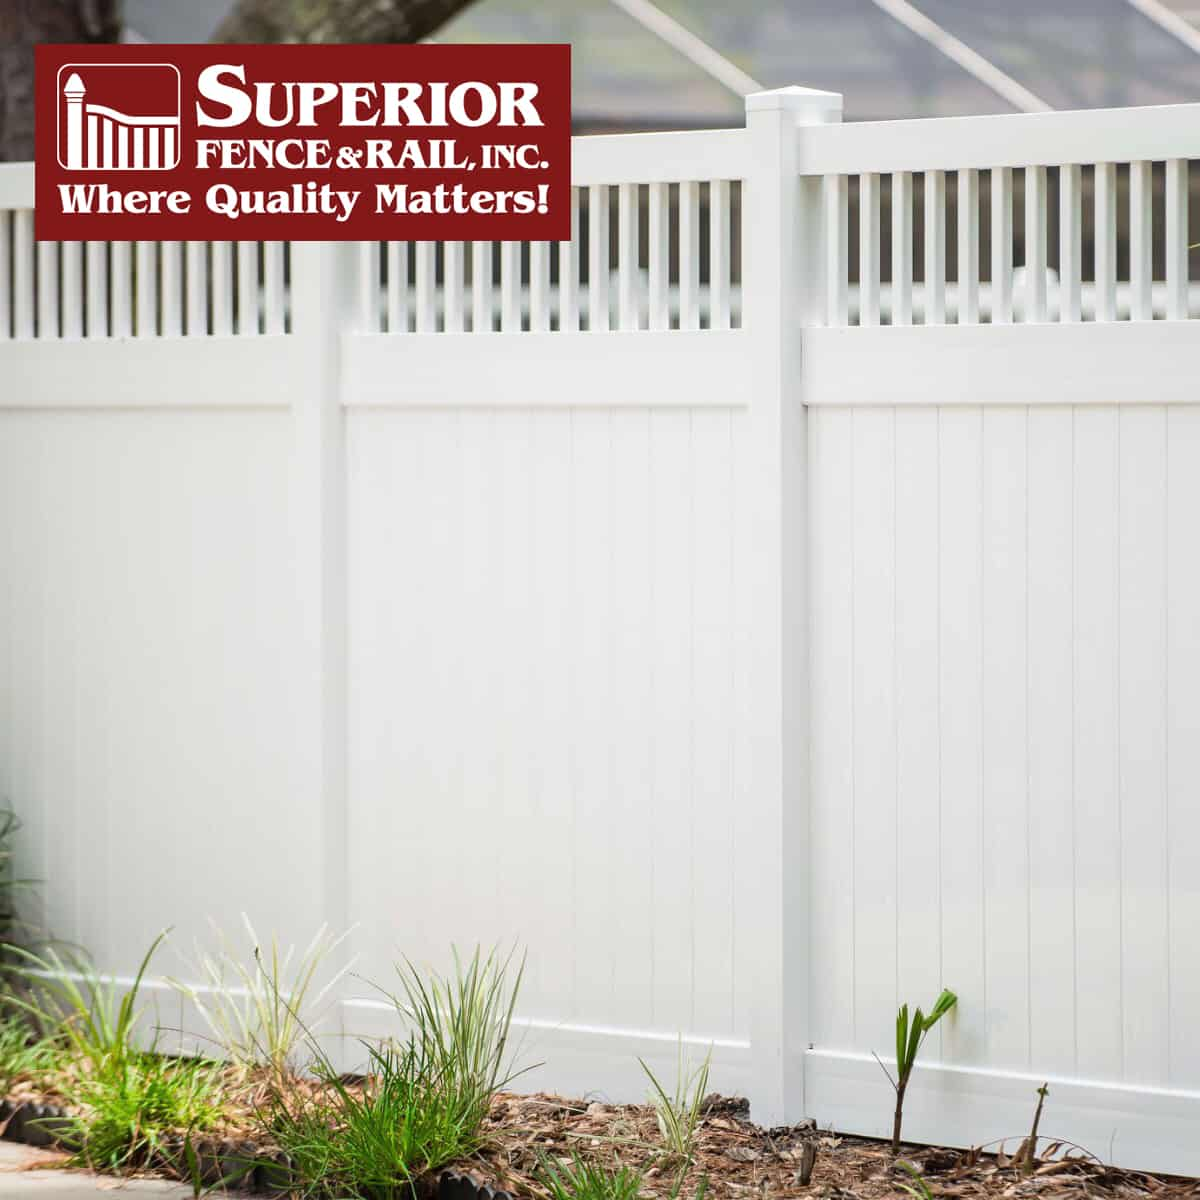 Athens fence company contractor